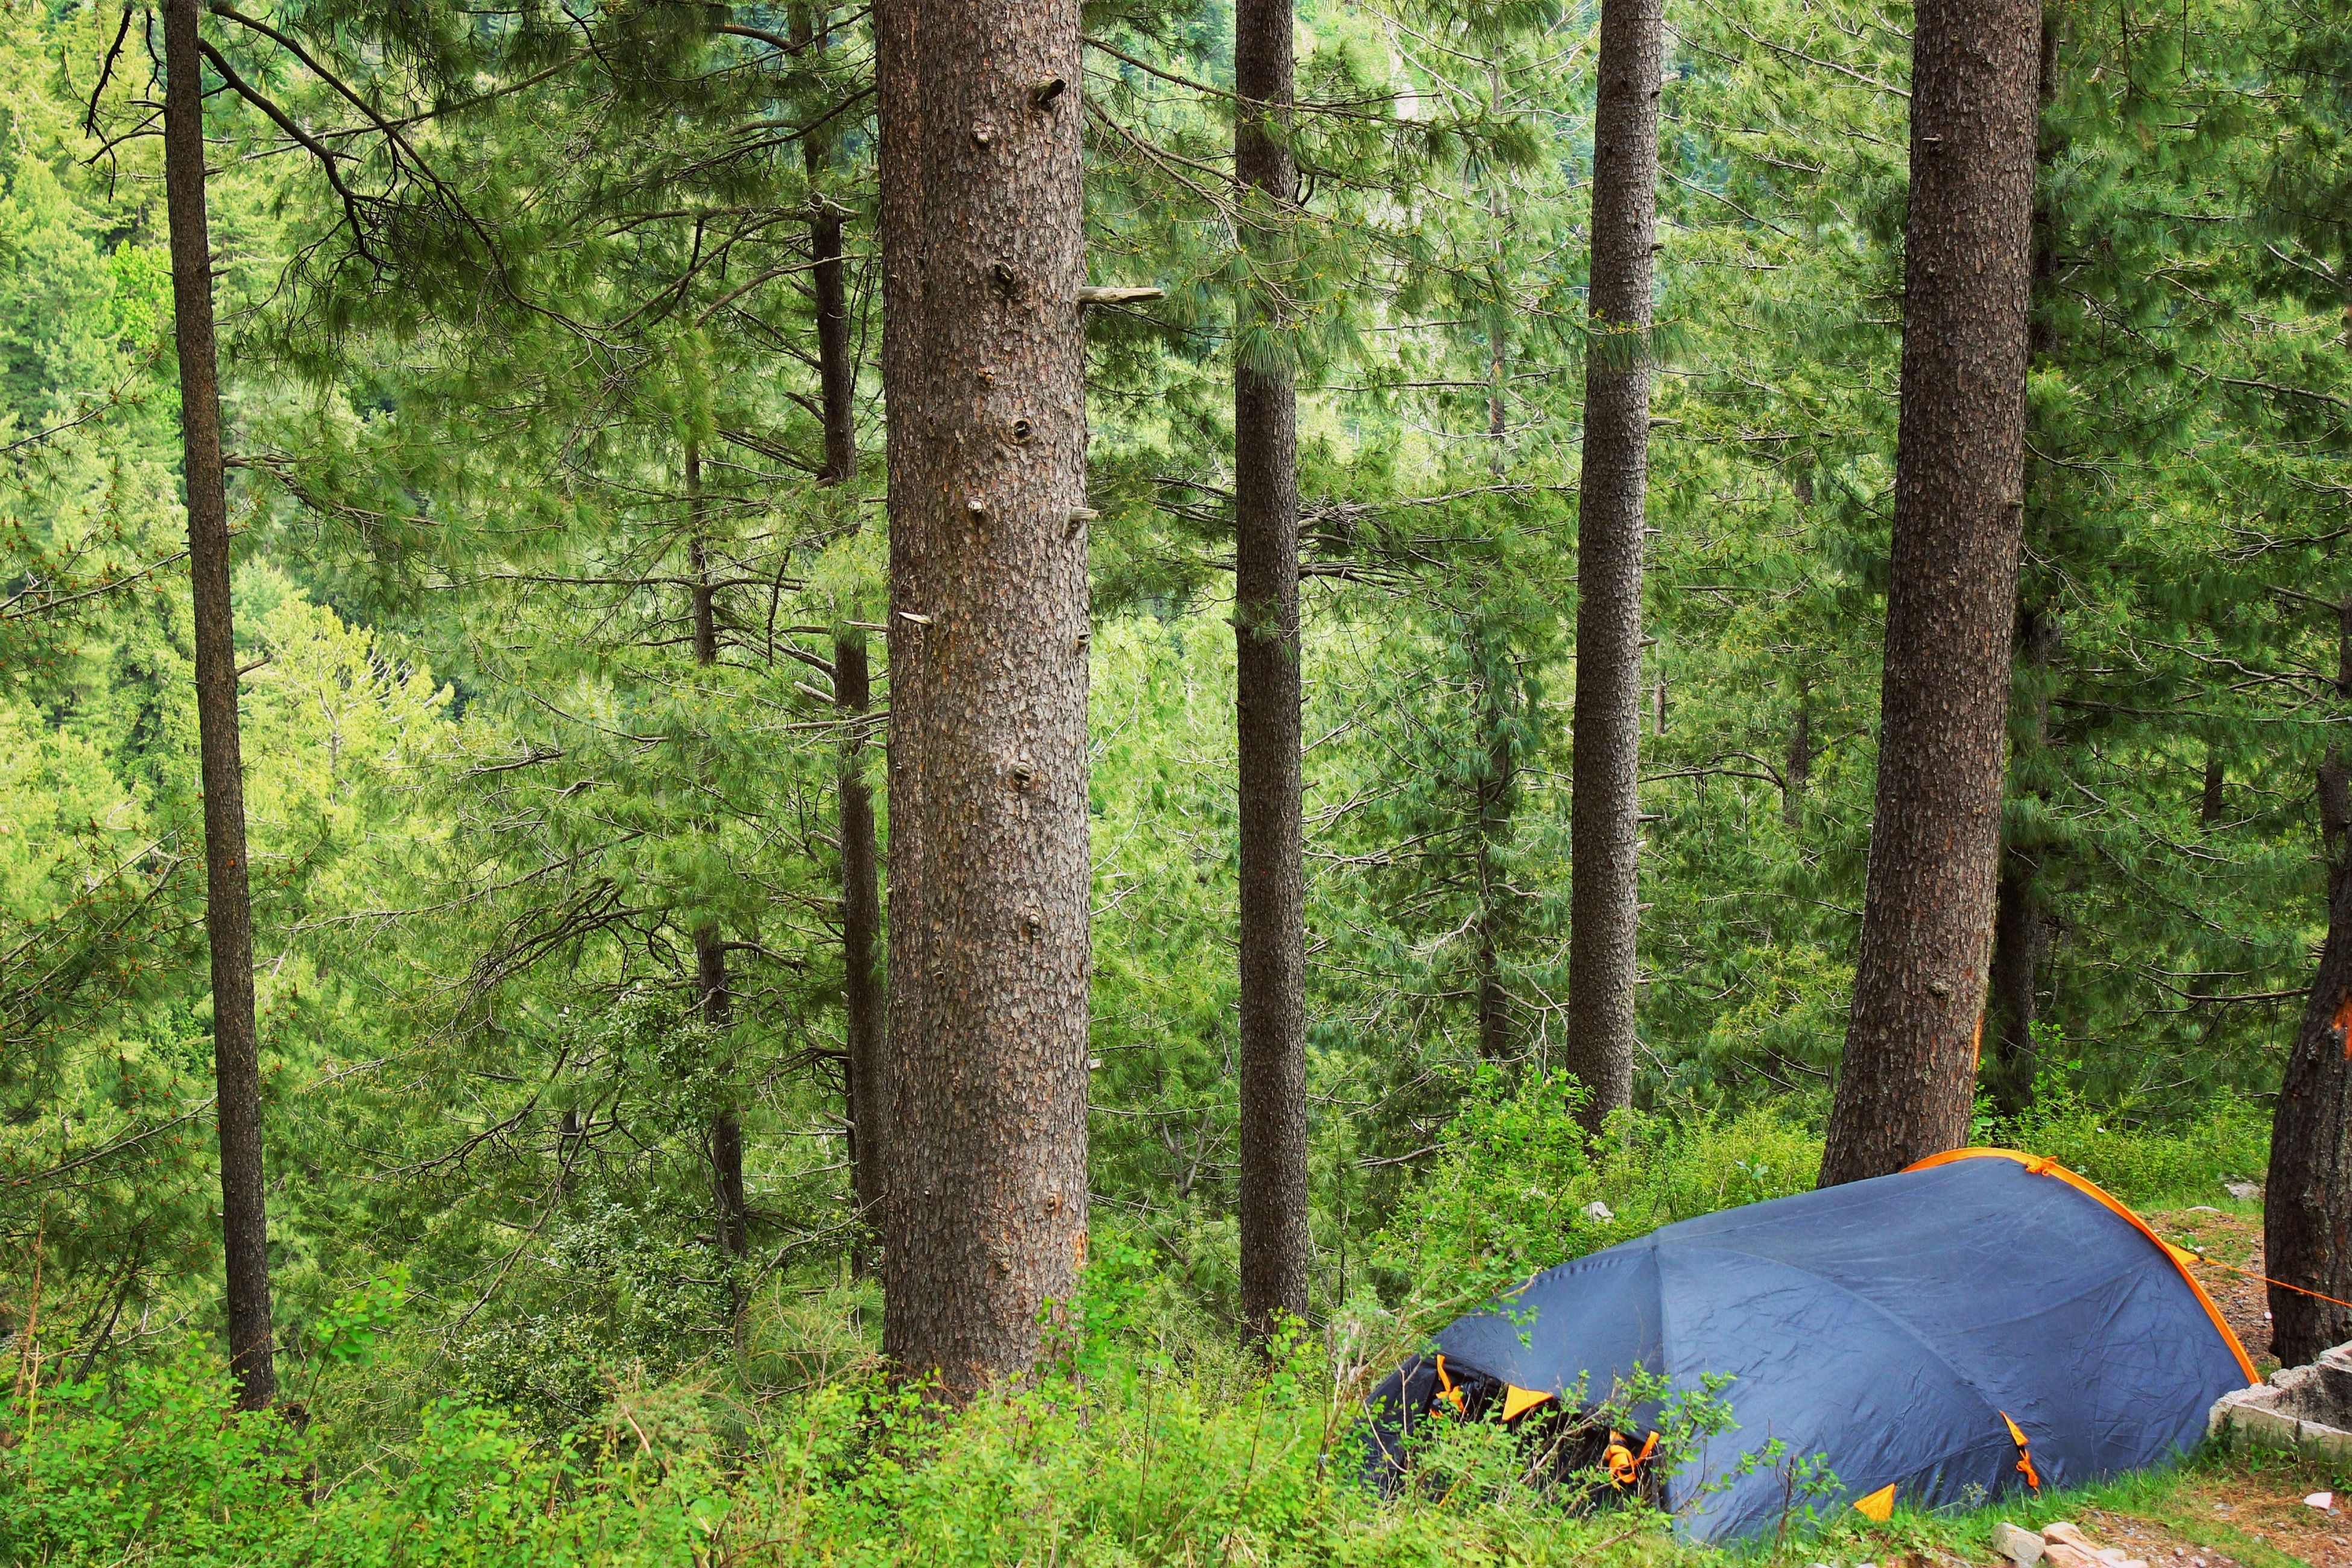 camping, tree, tent, forest, nature, beauty in nature, green color, woodland, pine tree, scenics, day, tranquility, landscape, outdoors, grass, no people, shelter, sky